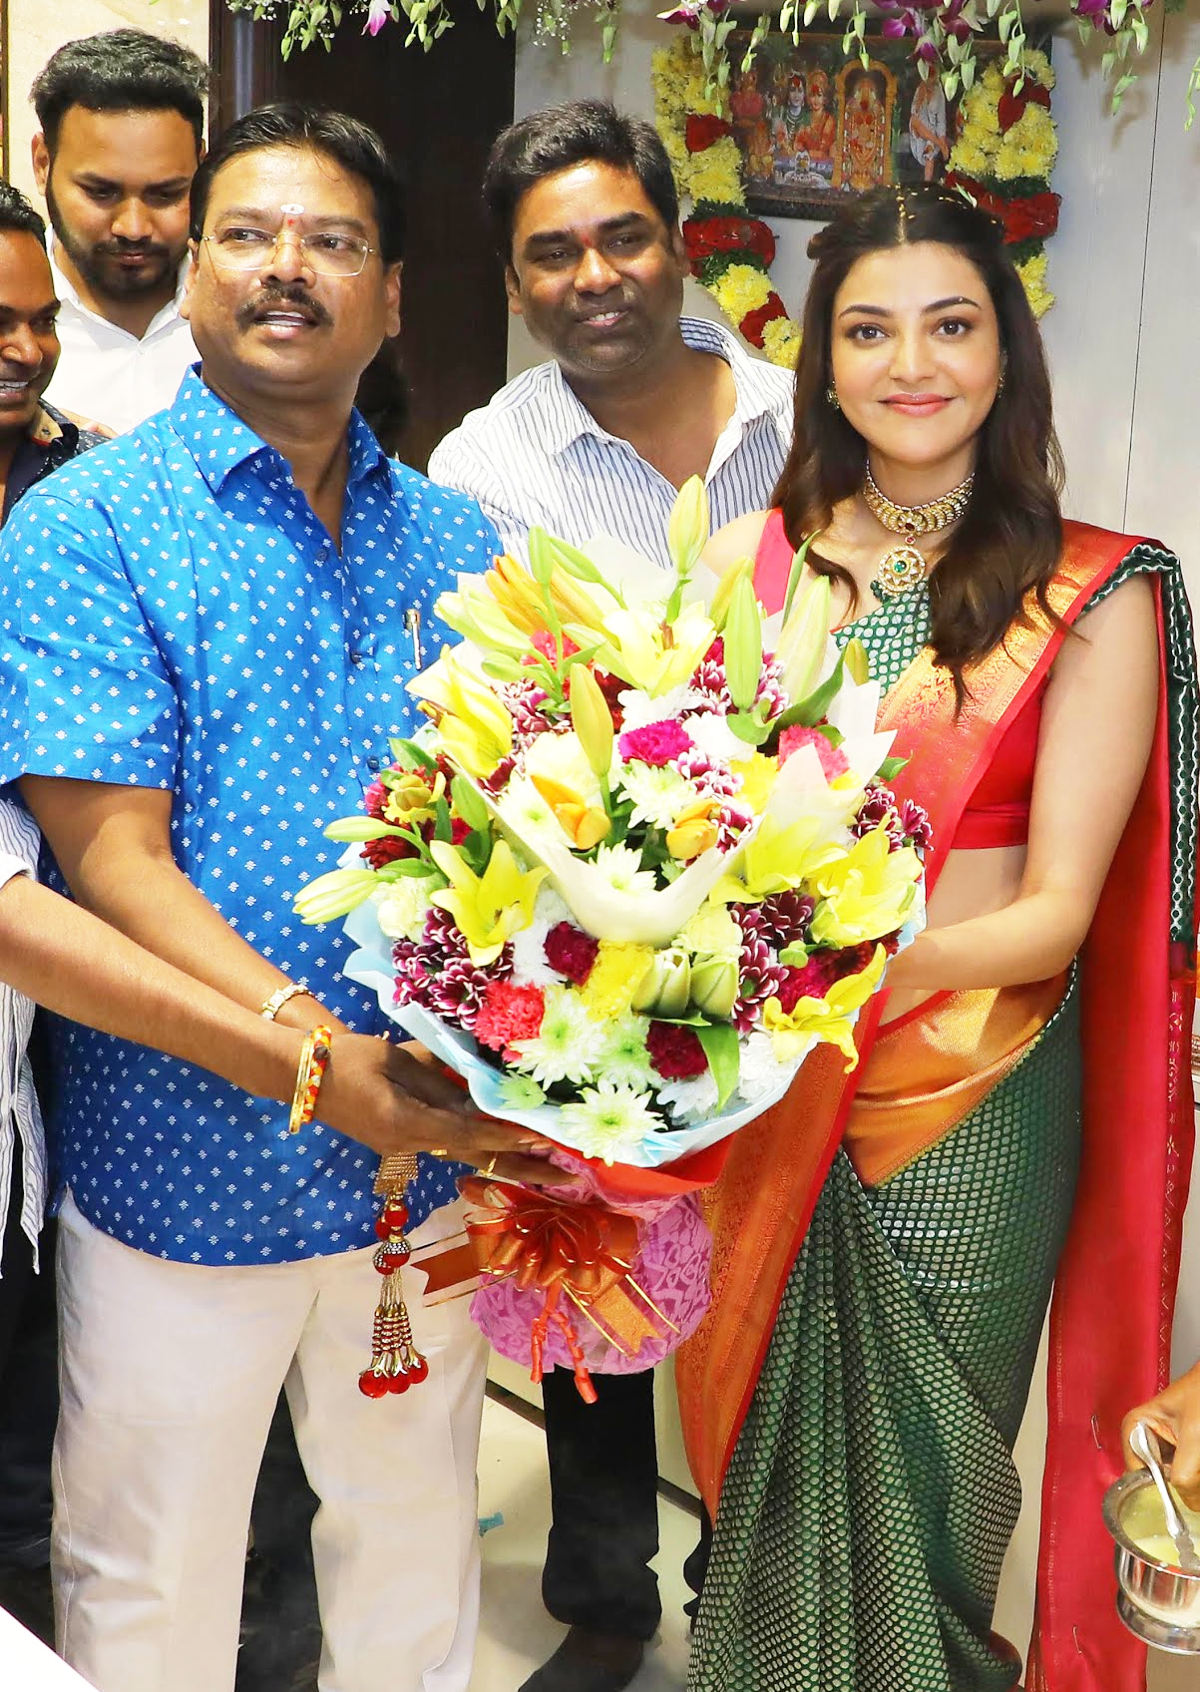 Actress Kajal Aggarwal launches Maangalya Shopping Mall in Hyderabad at Chintal